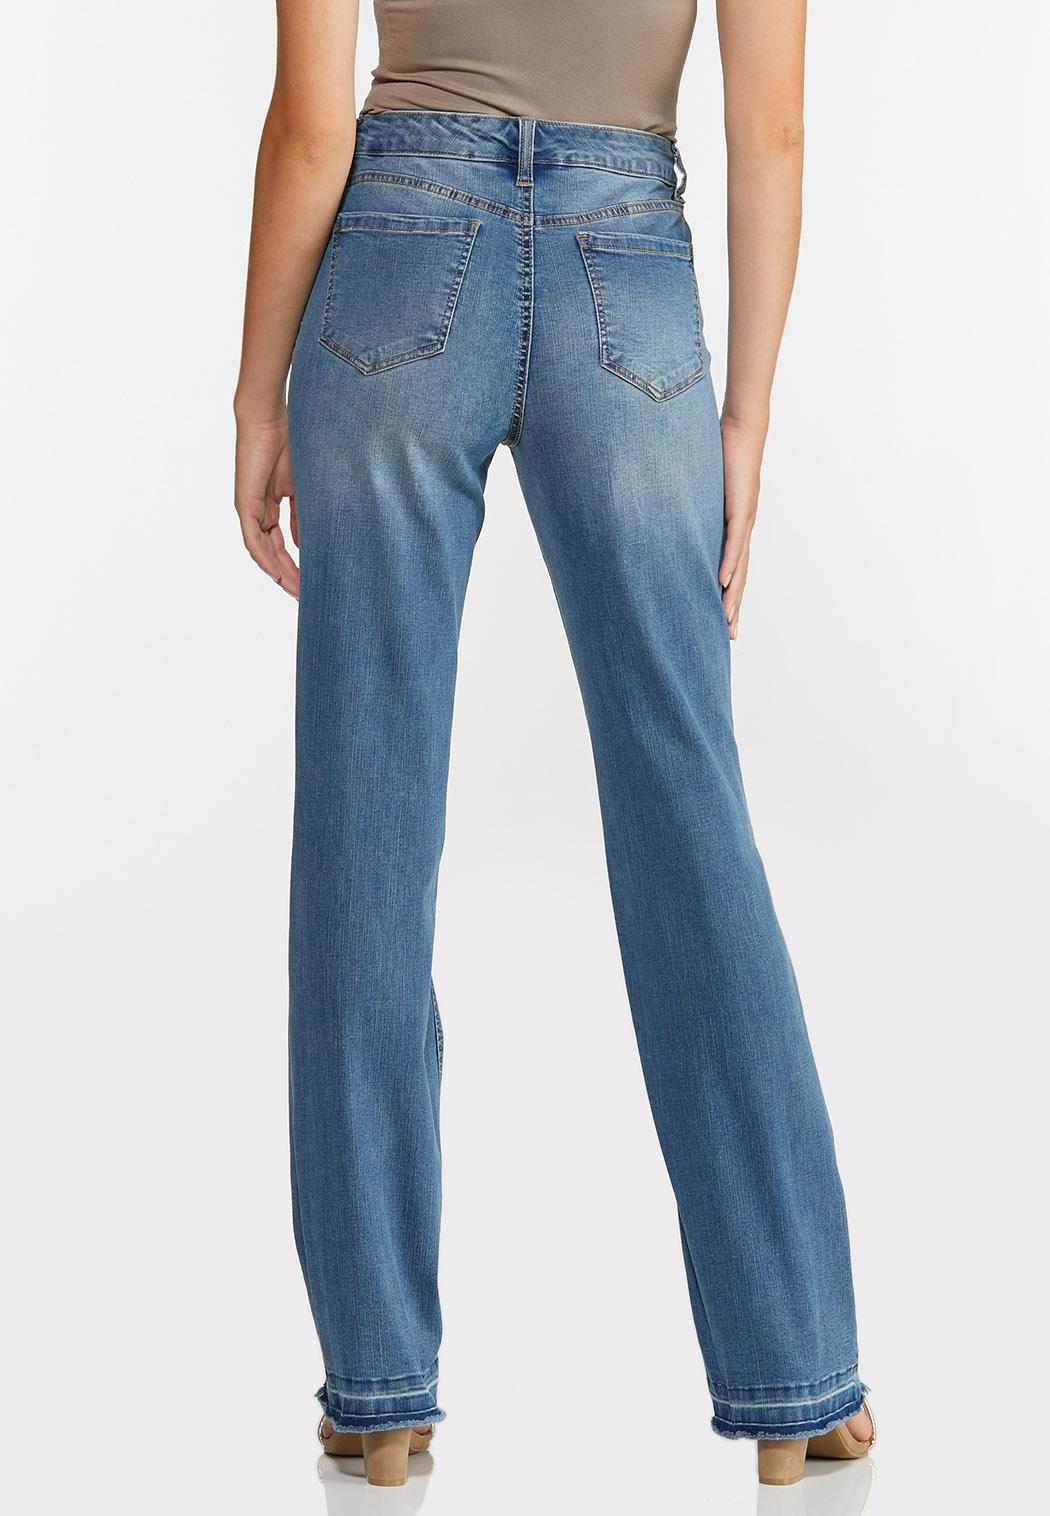 Curvy Flare Jeans (Item #44330415)